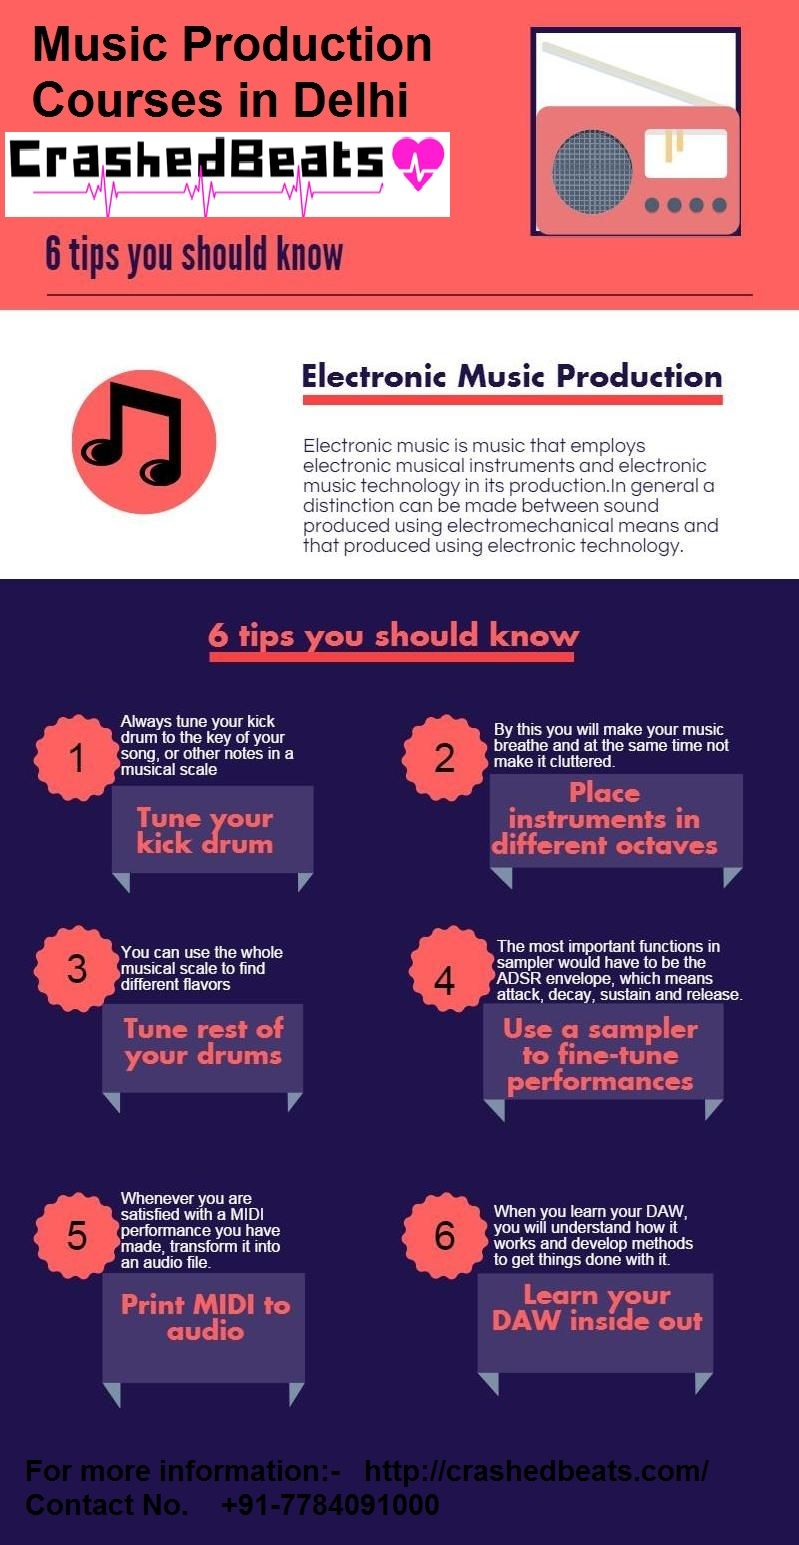 Pin By Crashedbeats On Music Production Courses In Delhi Pinterest